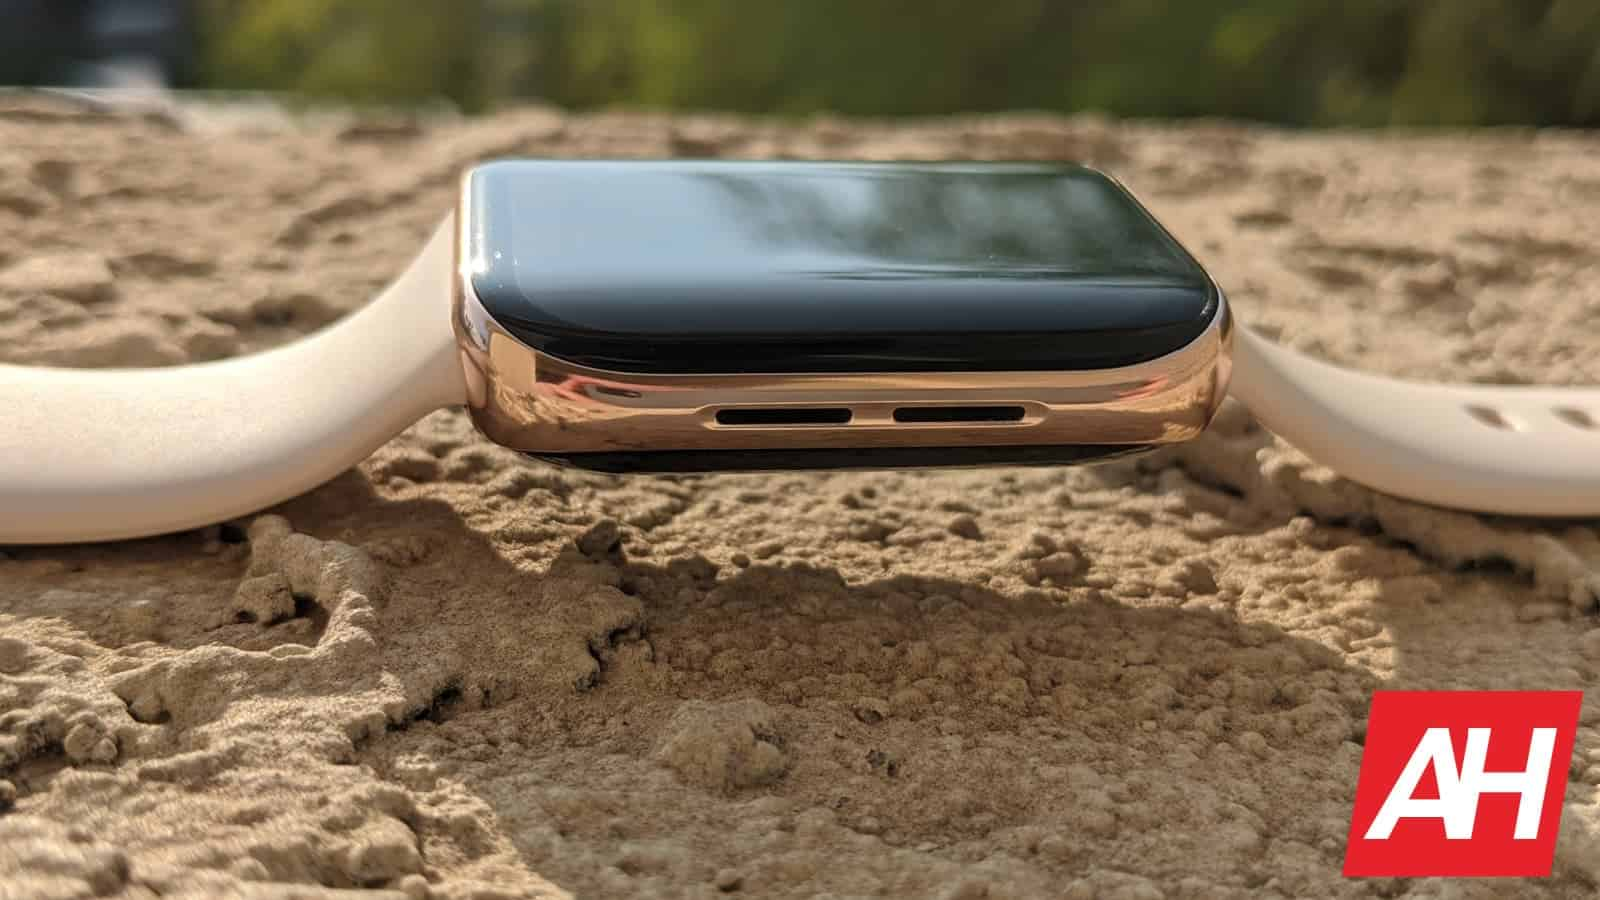 Oppo Watch Review 5